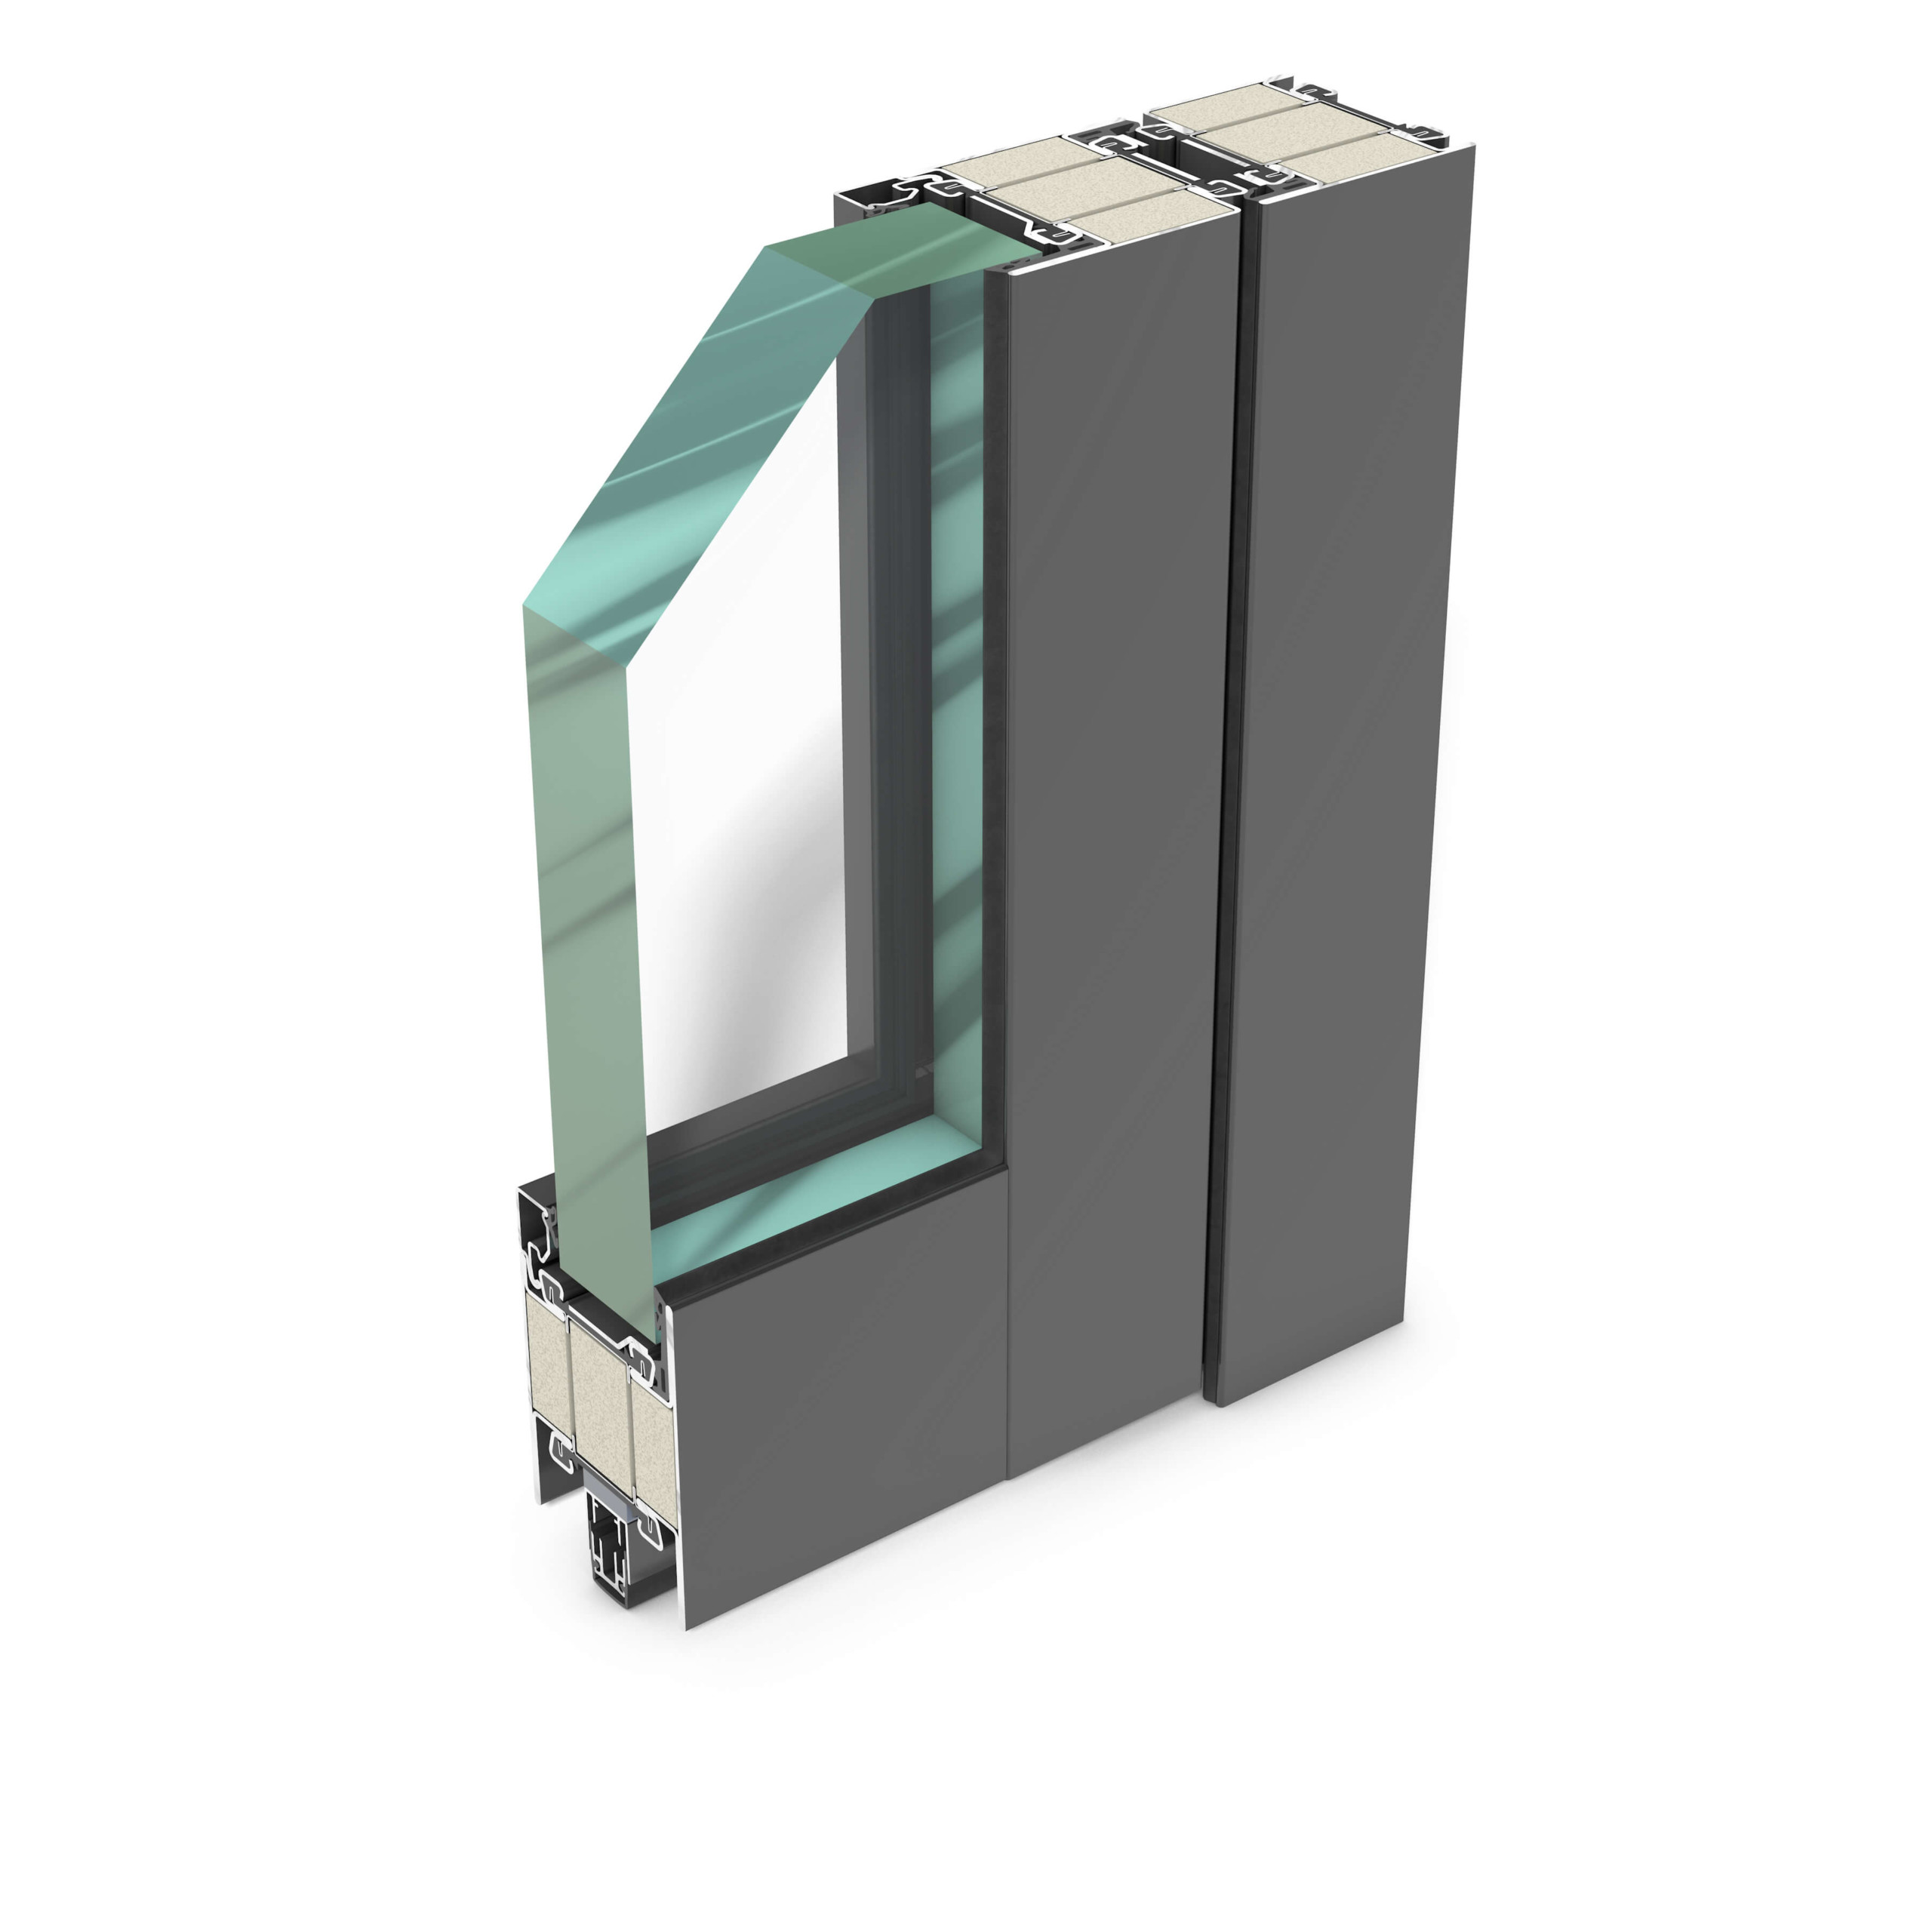 rp hermetic 70FP-90 – thermally insulated steel profile system for EI90/F90/T90-compliant fire and smoke protection doors